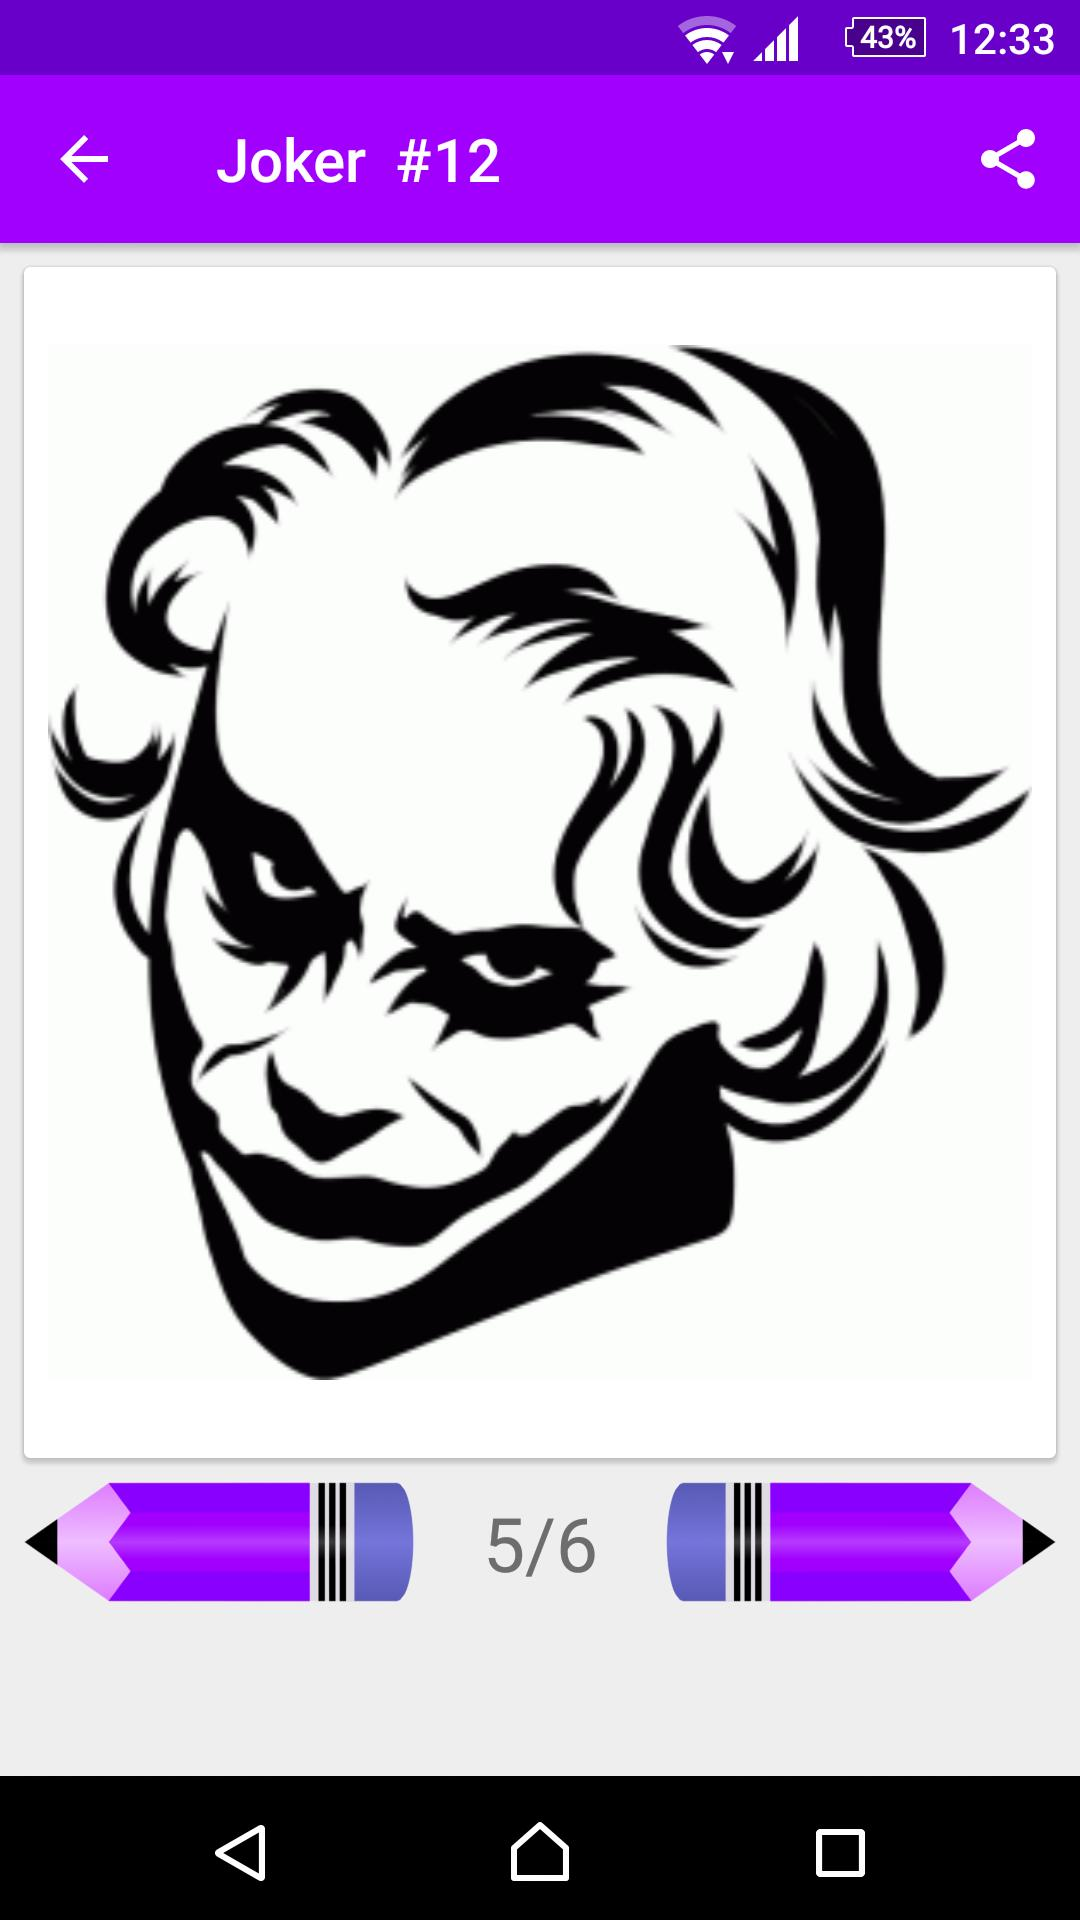 Learn How To Draw Joker For Android Apk Download